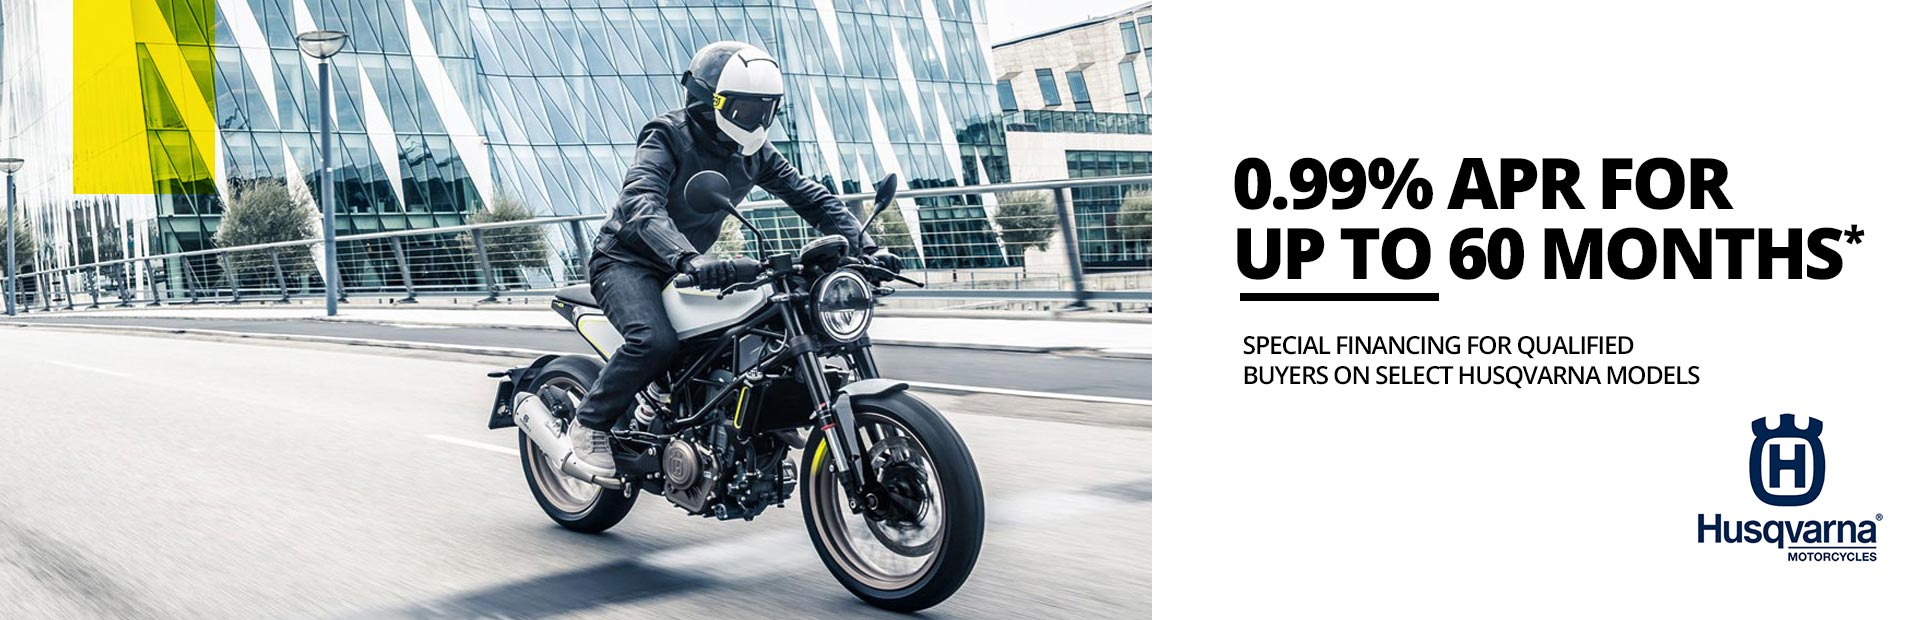 Husqvarna Motorcycles: VENTURE OUT Street Retail Finance Program